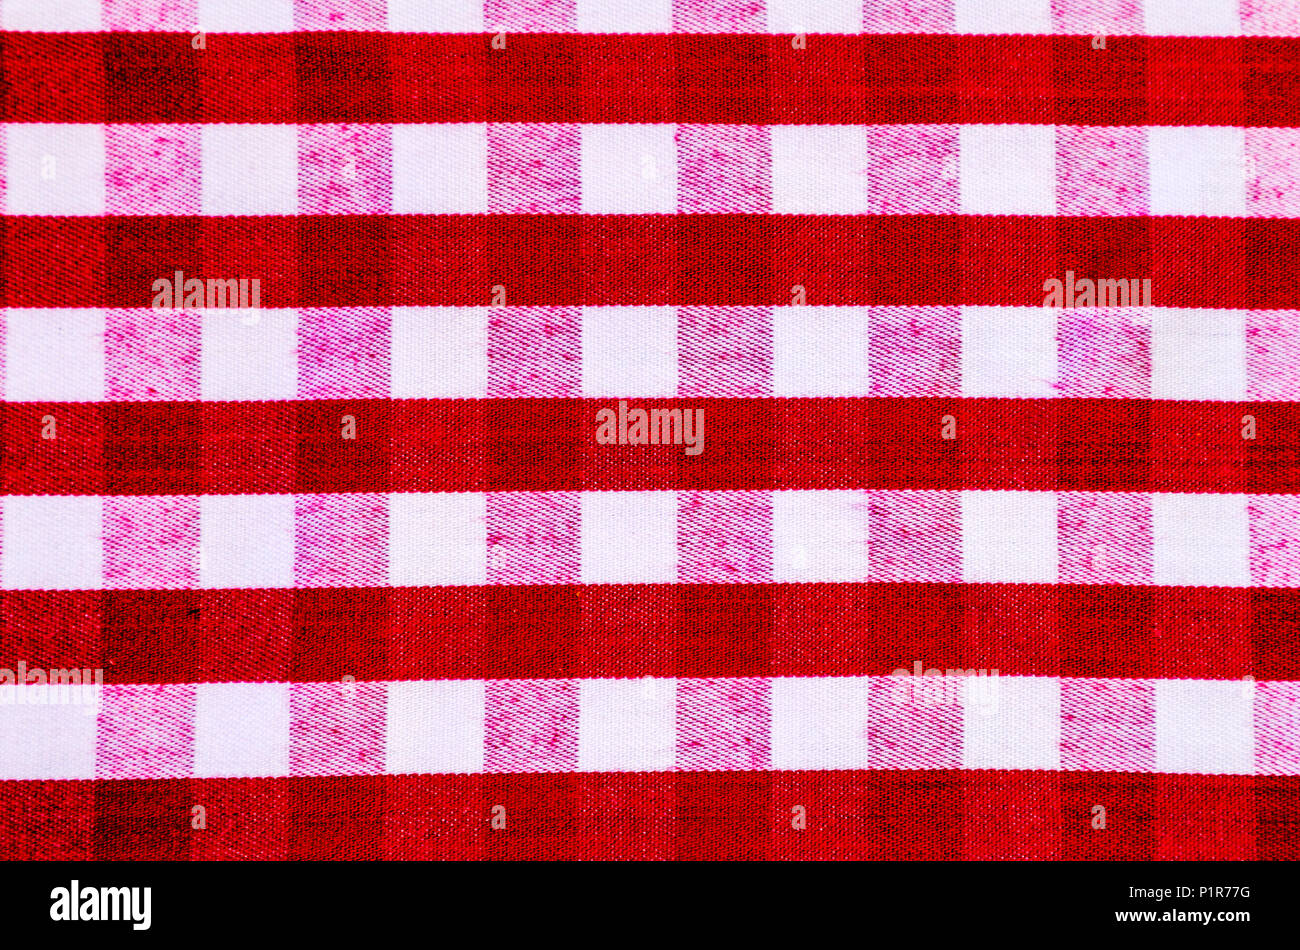 Red and white checked or striped gingham tablecloth, for use as a background or wallpaper - Stock Image